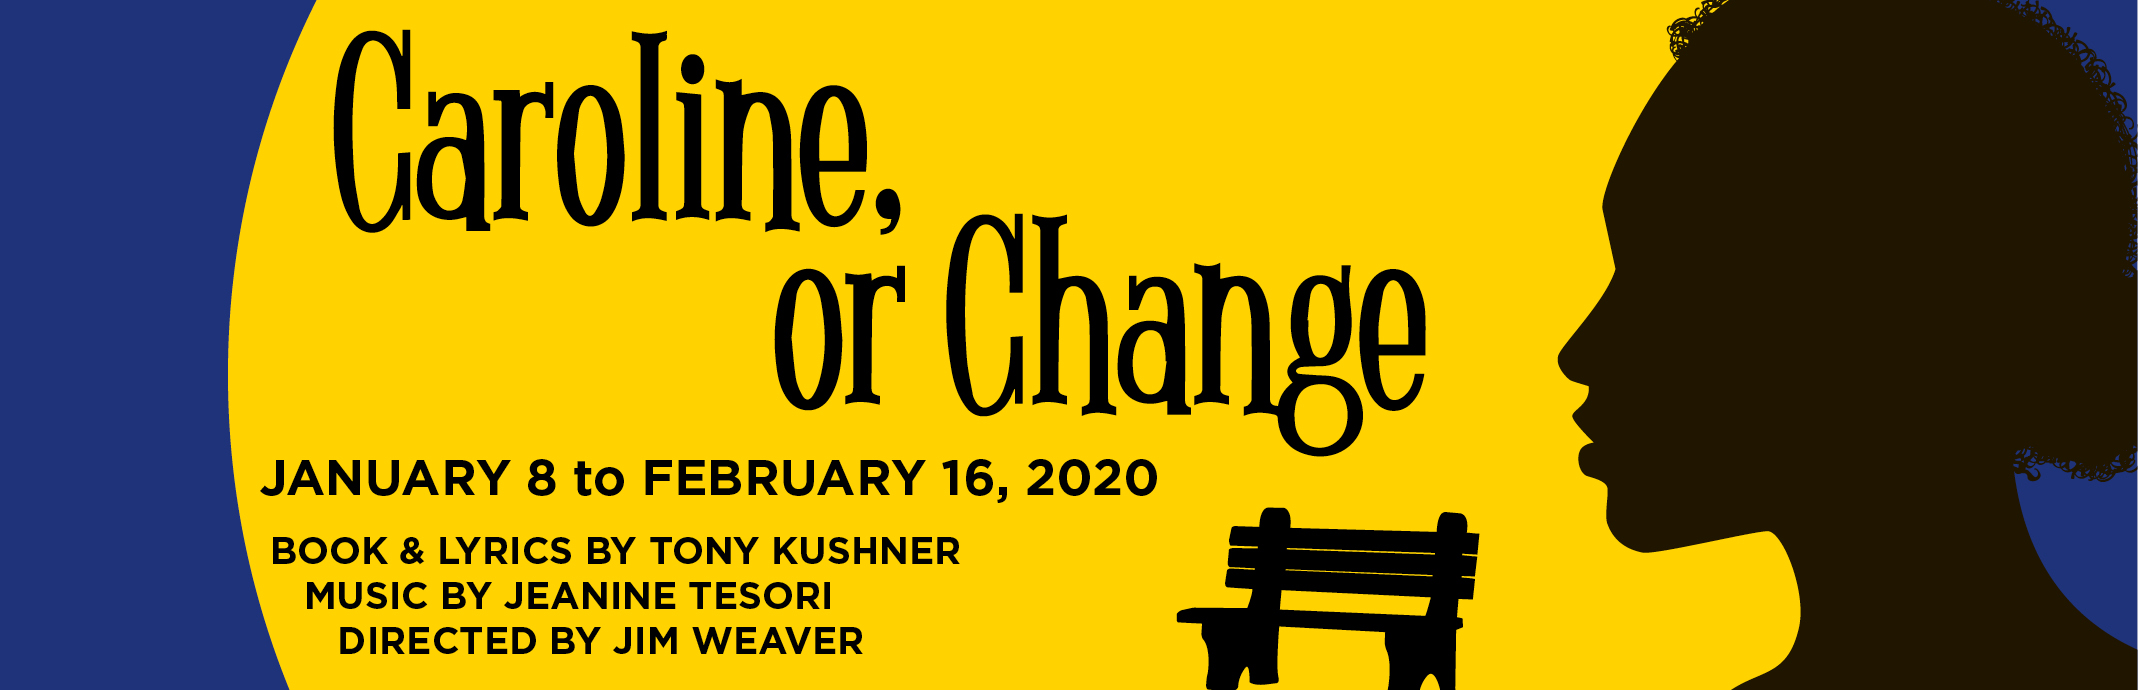 Caroline, or Change; January 8 to February 16, 2020; Book and Lyrics by Tony Kushner; Music by Jeanine Tesori; Directed by Jim Weaver